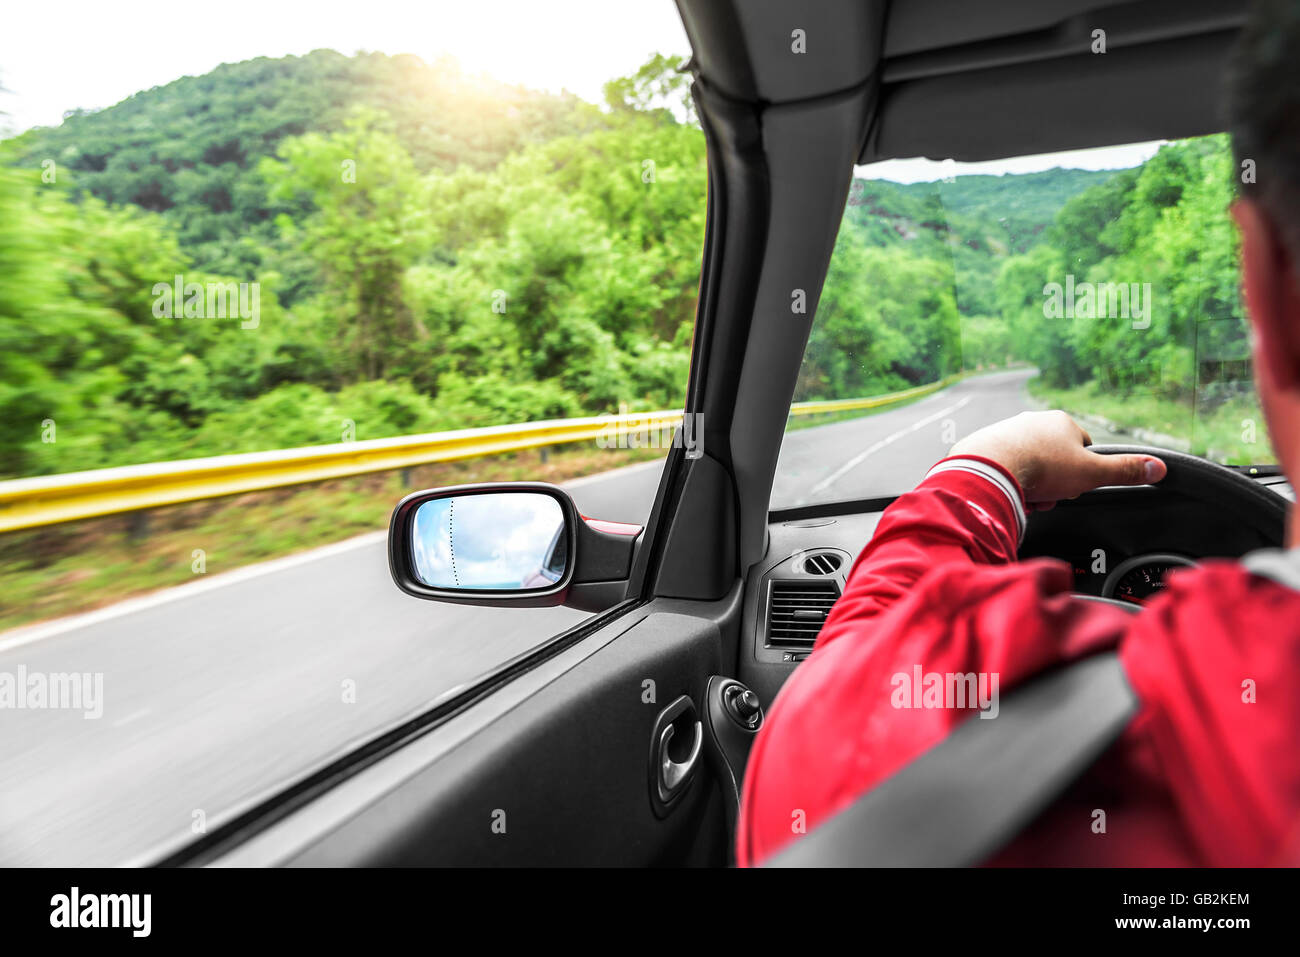 Male driver drives a convertible car on the country road. The view from the cabin, rear view, inside. - Stock Image